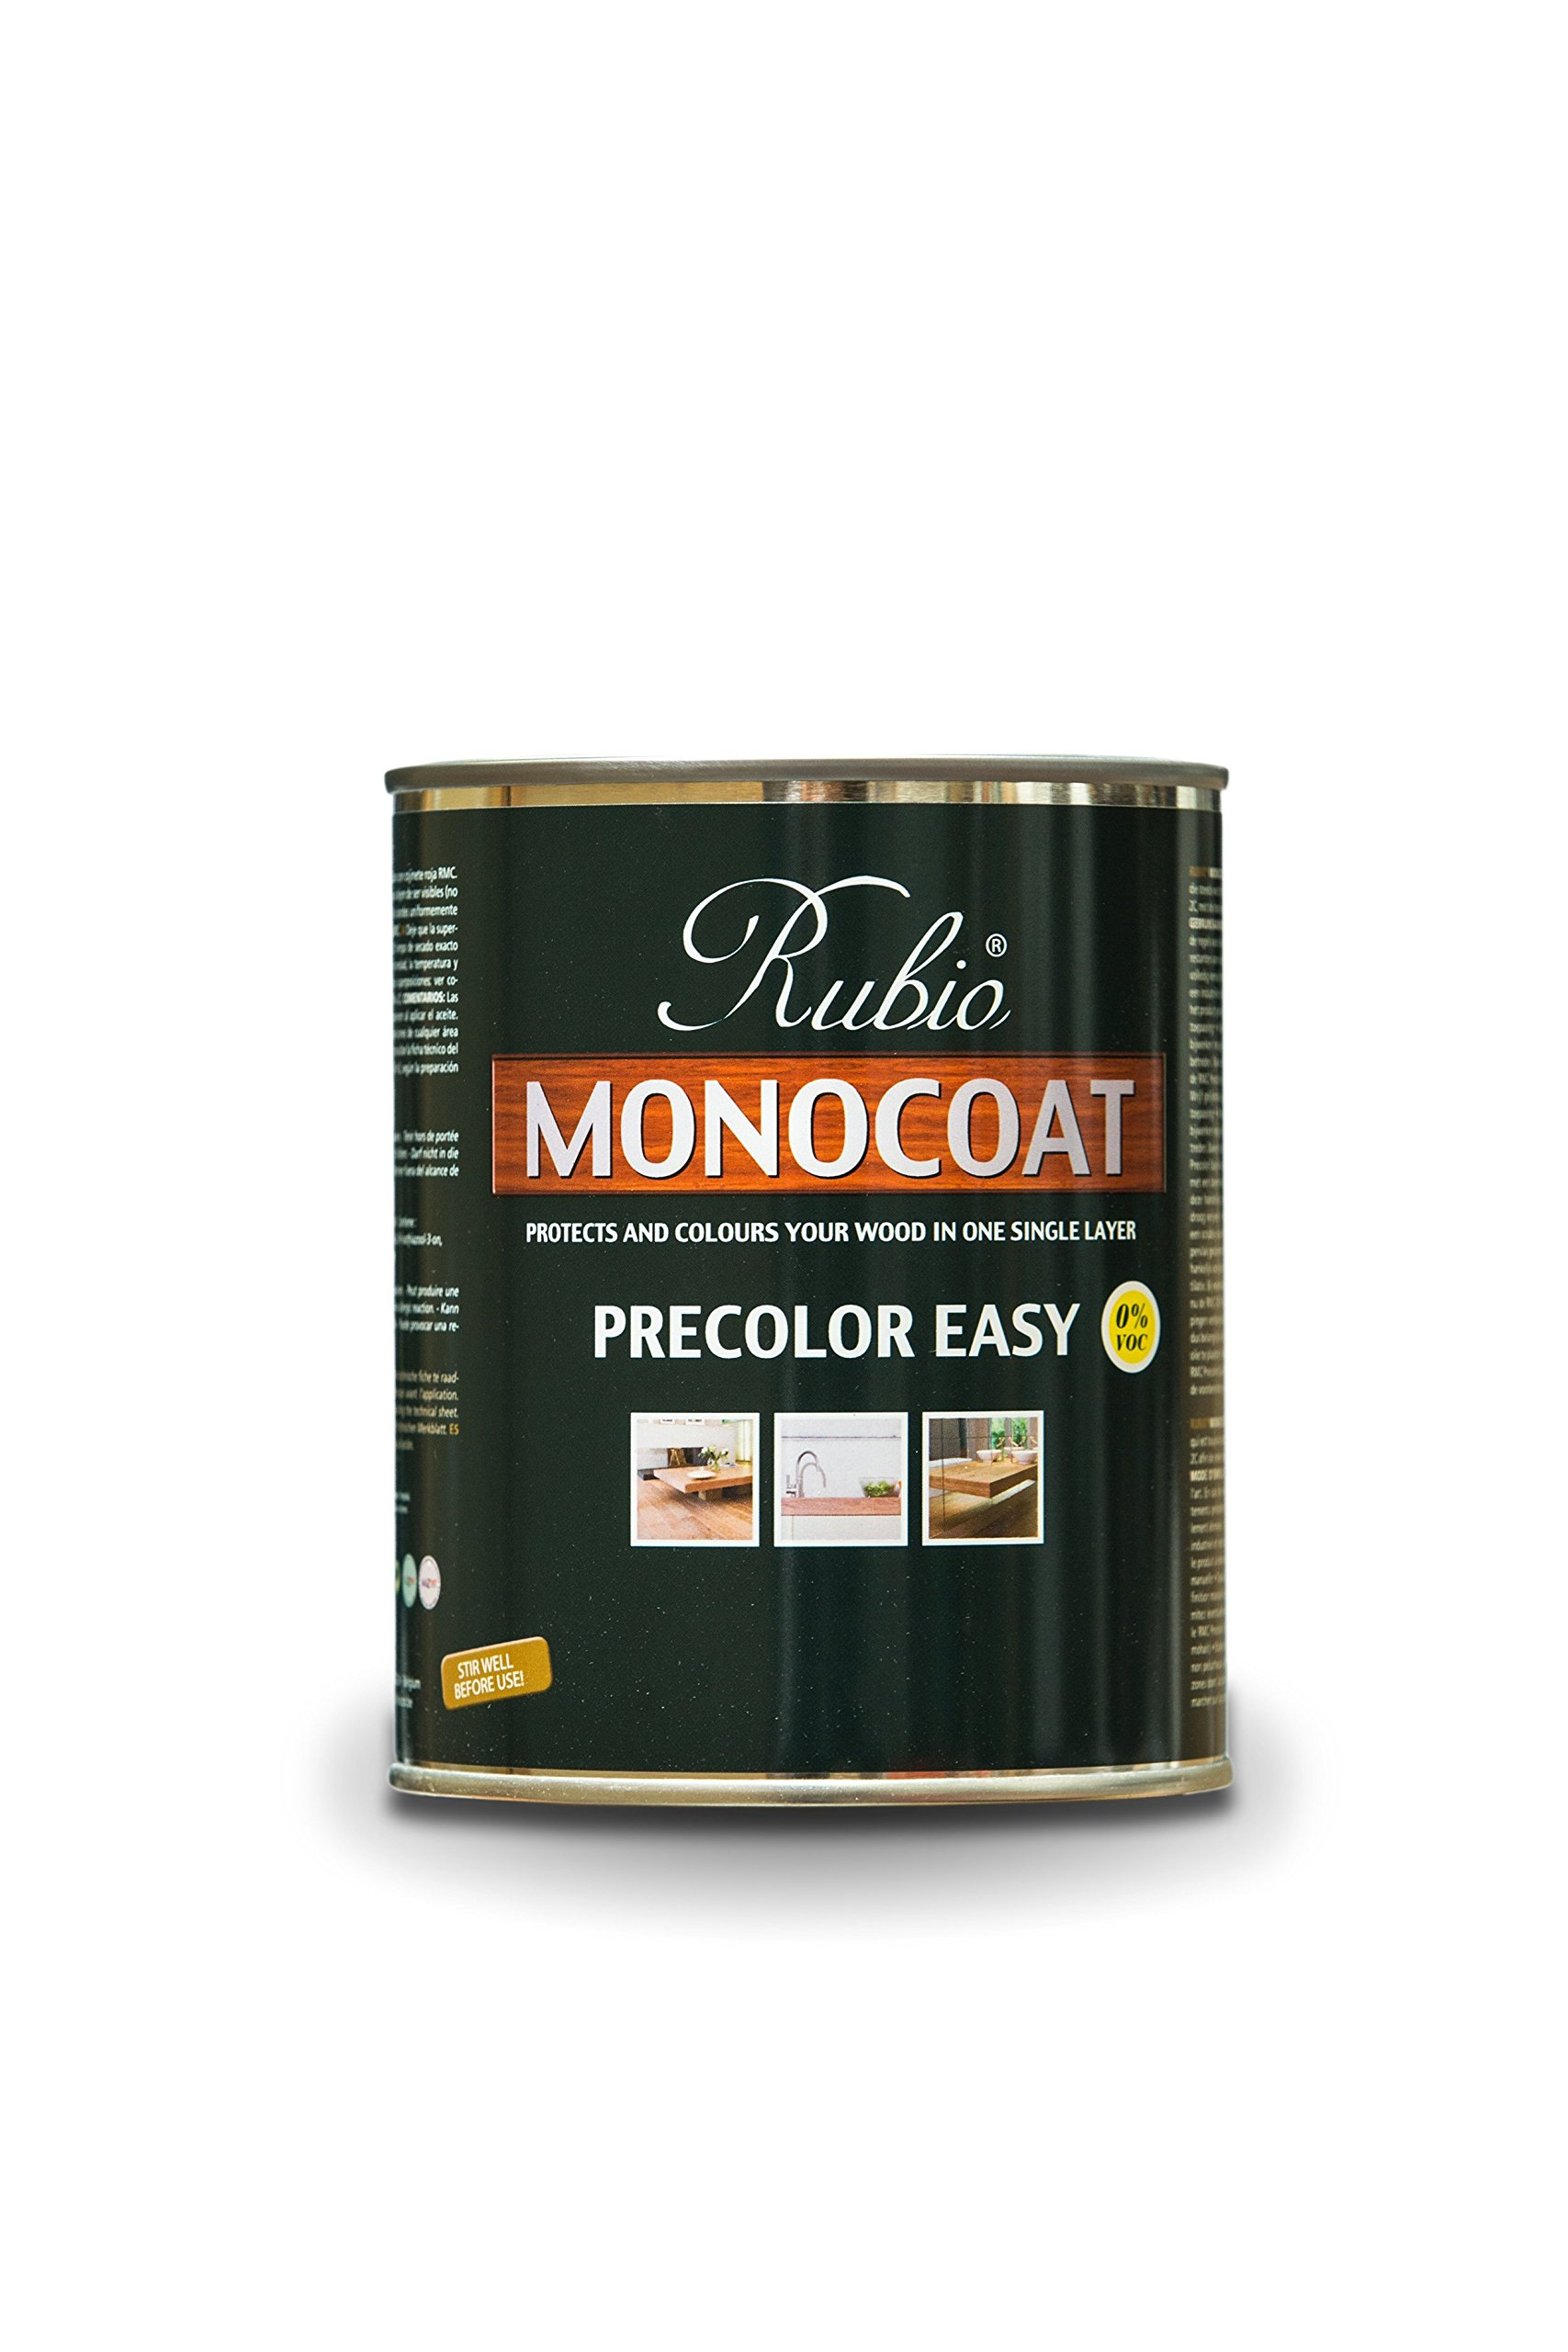 Rubio Monocoat Wood Stain Pre-Color Easy Monsoon Grey 1 Liter by Rubio Monocoat